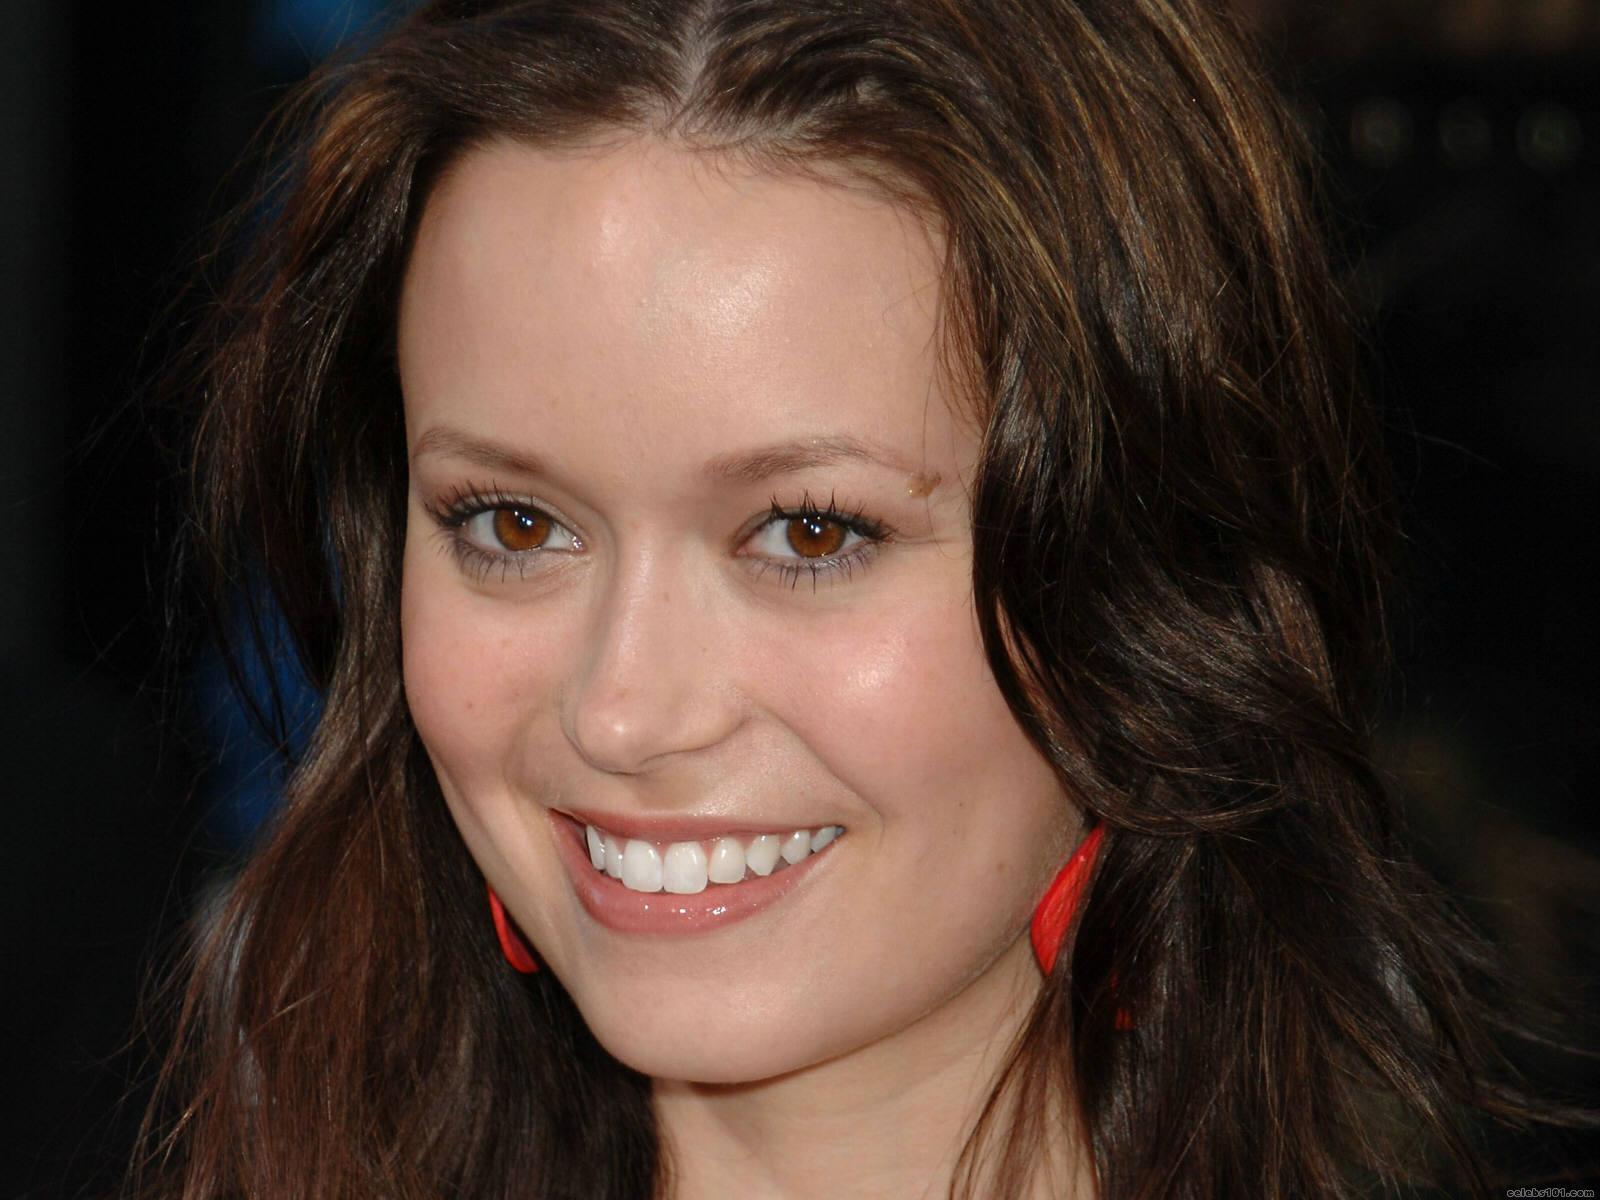 The 37-year old daughter of father (?) and mother(?) Summer Glau in 2018 photo. Summer Glau earned a  million dollar salary - leaving the net worth at 5 million in 2018